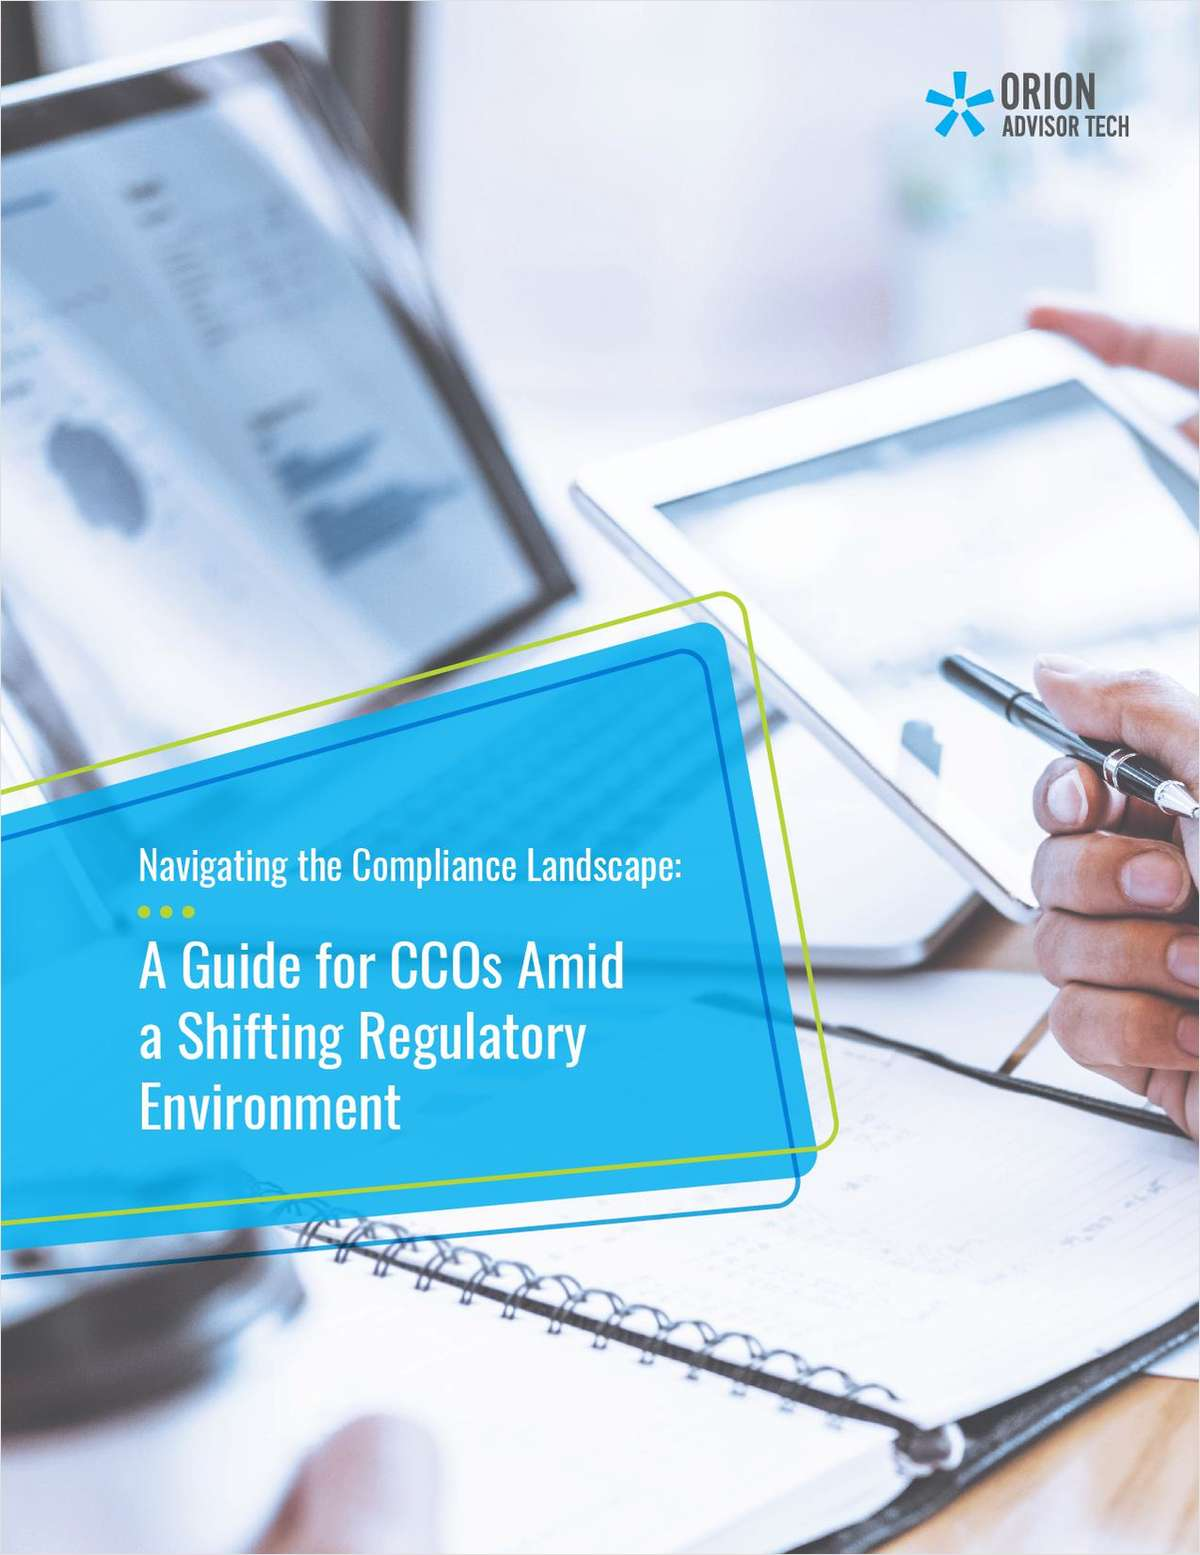 Navigating the Compliance Landscape: A Guide for CCOs Amid a Shifting Regulatory Environment